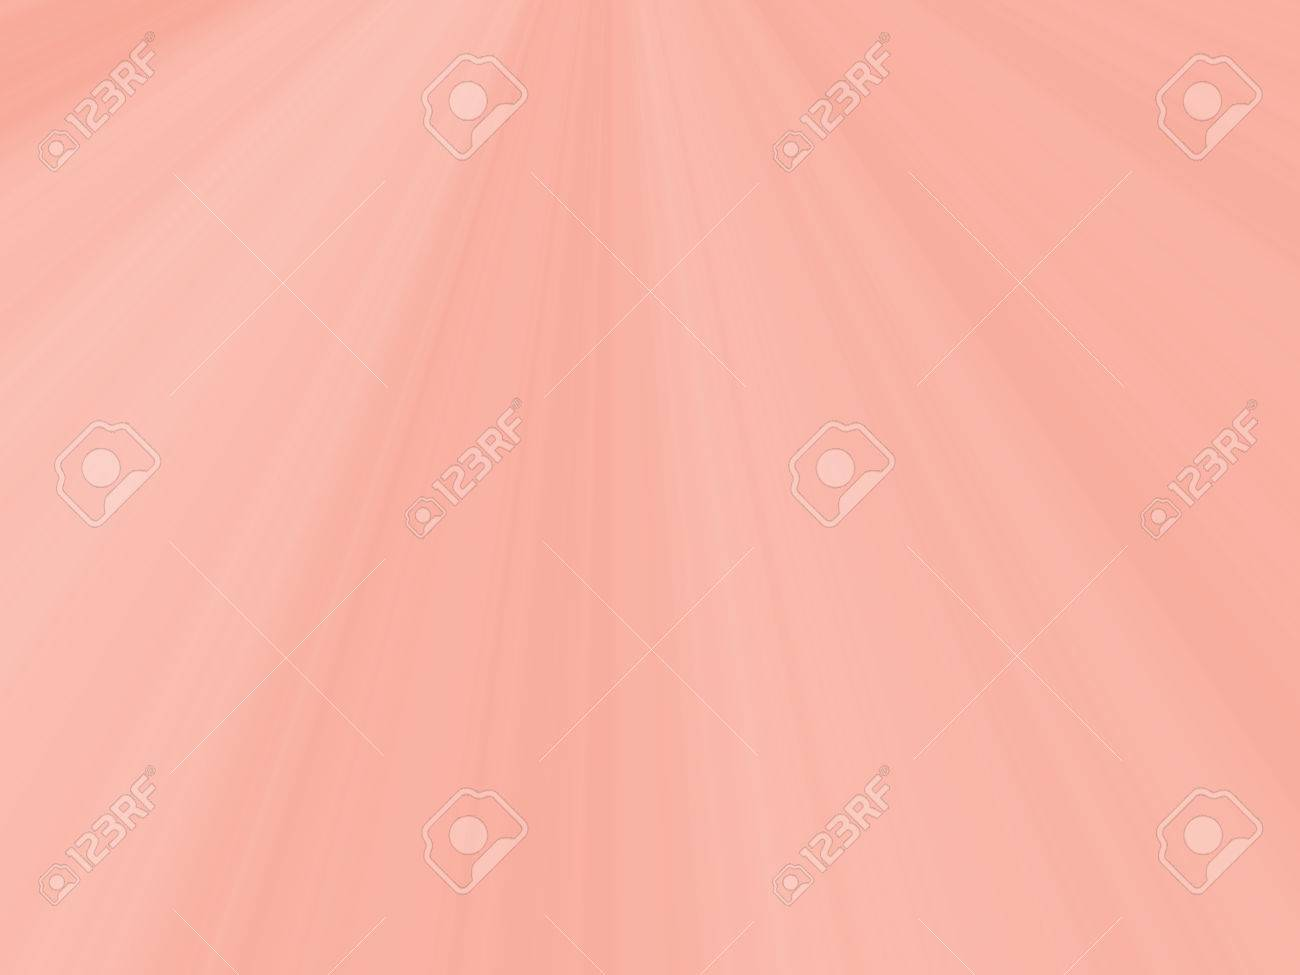 <b>Pink Gradient Background</b> Stock Footage Video | Shutterstock